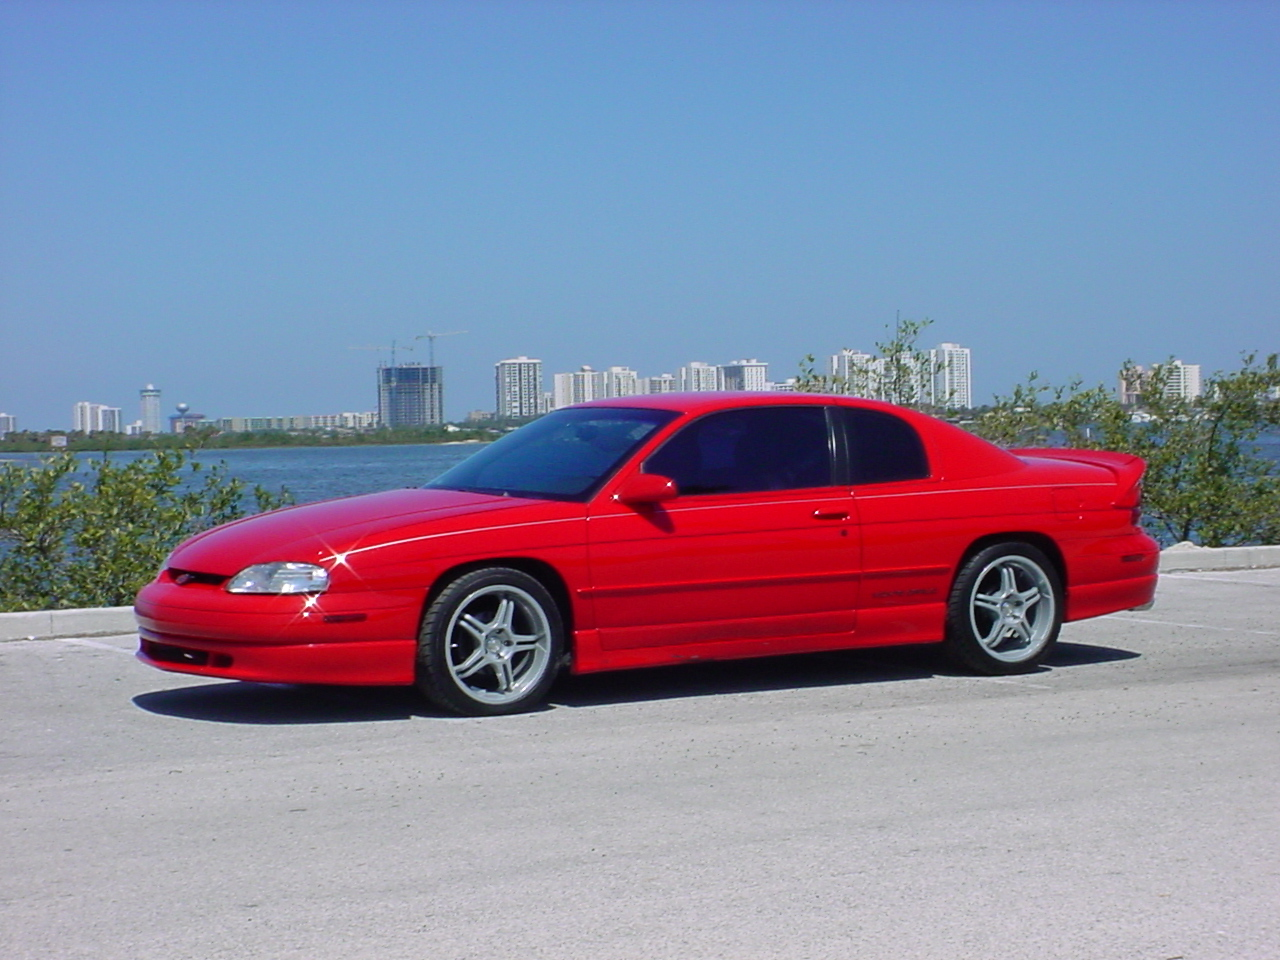 Picture of 1999 Chevrolet Monte Carlo 2 Dr Z34 Coupe